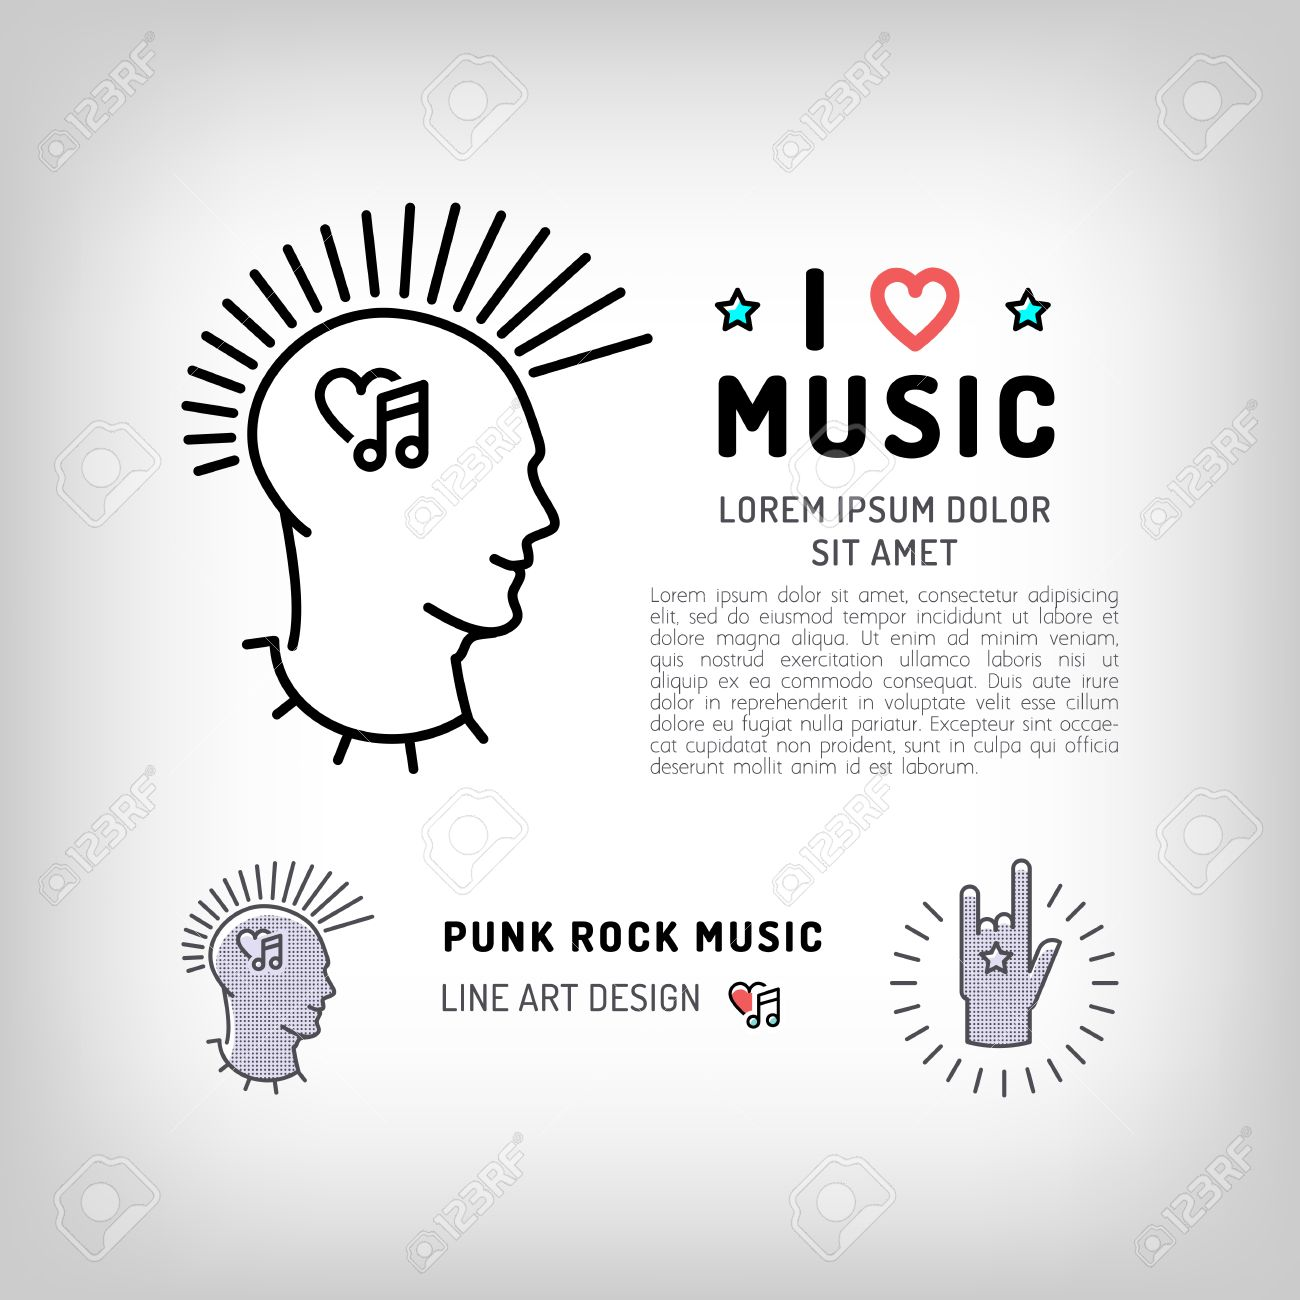 Punk rock music icons rock hand symbol the concept symbols punk rock music icons rock hand symbol the concept symbols of love for music biocorpaavc Image collections